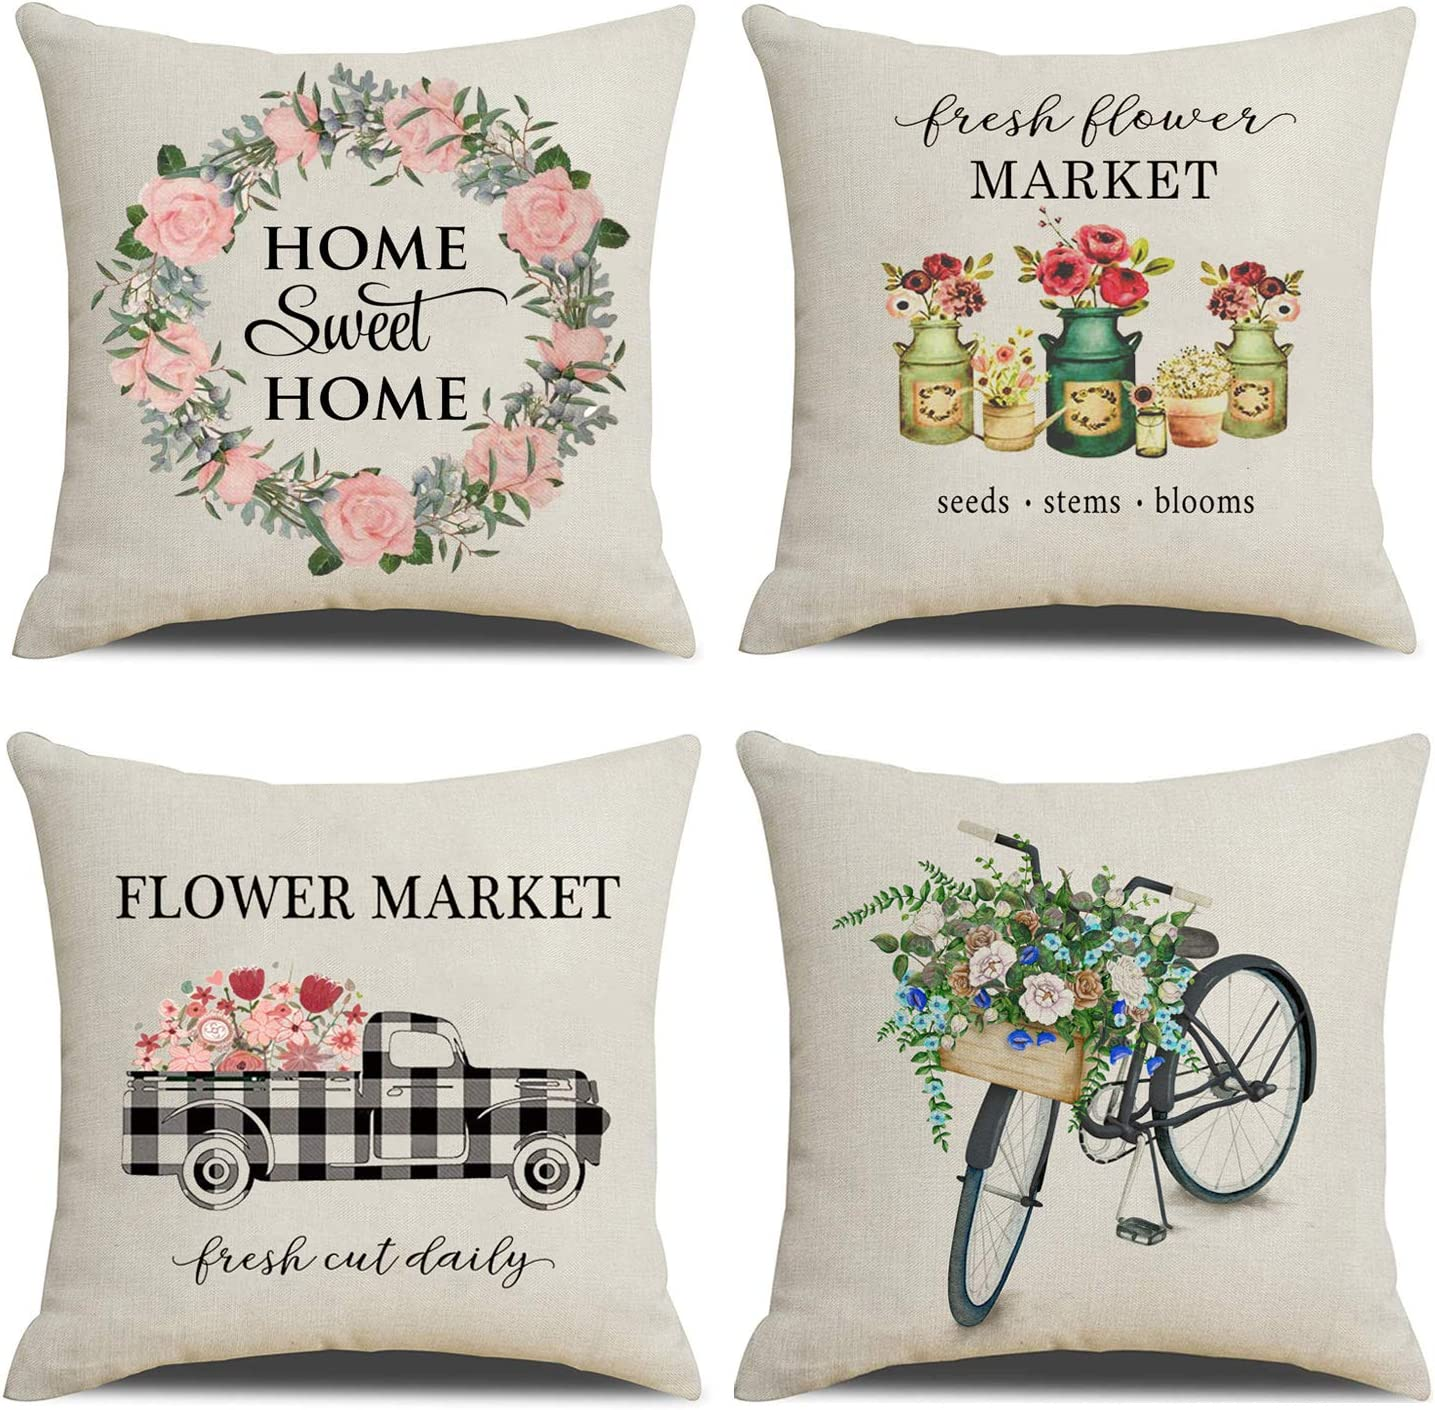 Amazon Com Nydecor Farmhouse Pillow Covers Floral Throw Pillow Cases Cotton Linen Buffalo Check Truck Bicycle Flower Market Cushion Cover For Couch Sofa 18x18 Set Of 4 Home Kitchen